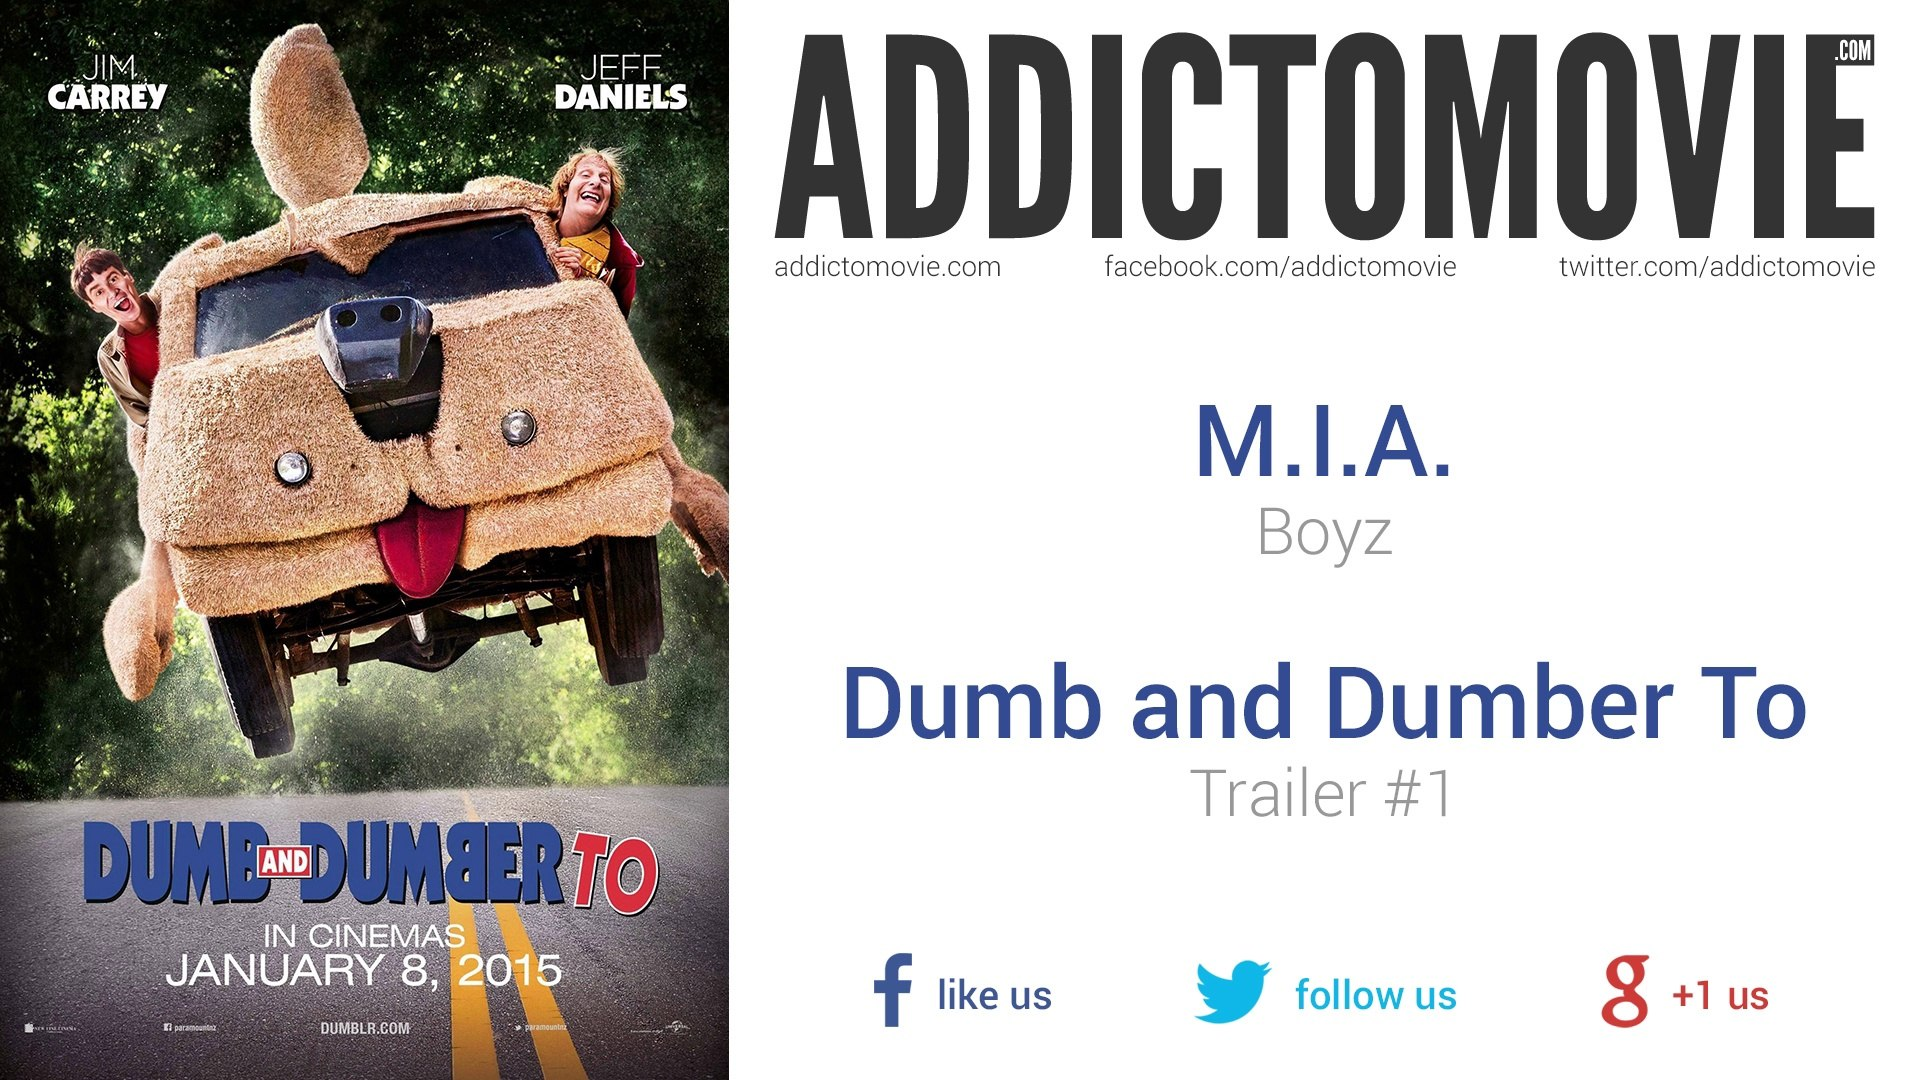 Dumb and Dumber To - Trailer #1 Music #2 (M I A  - Boyz)